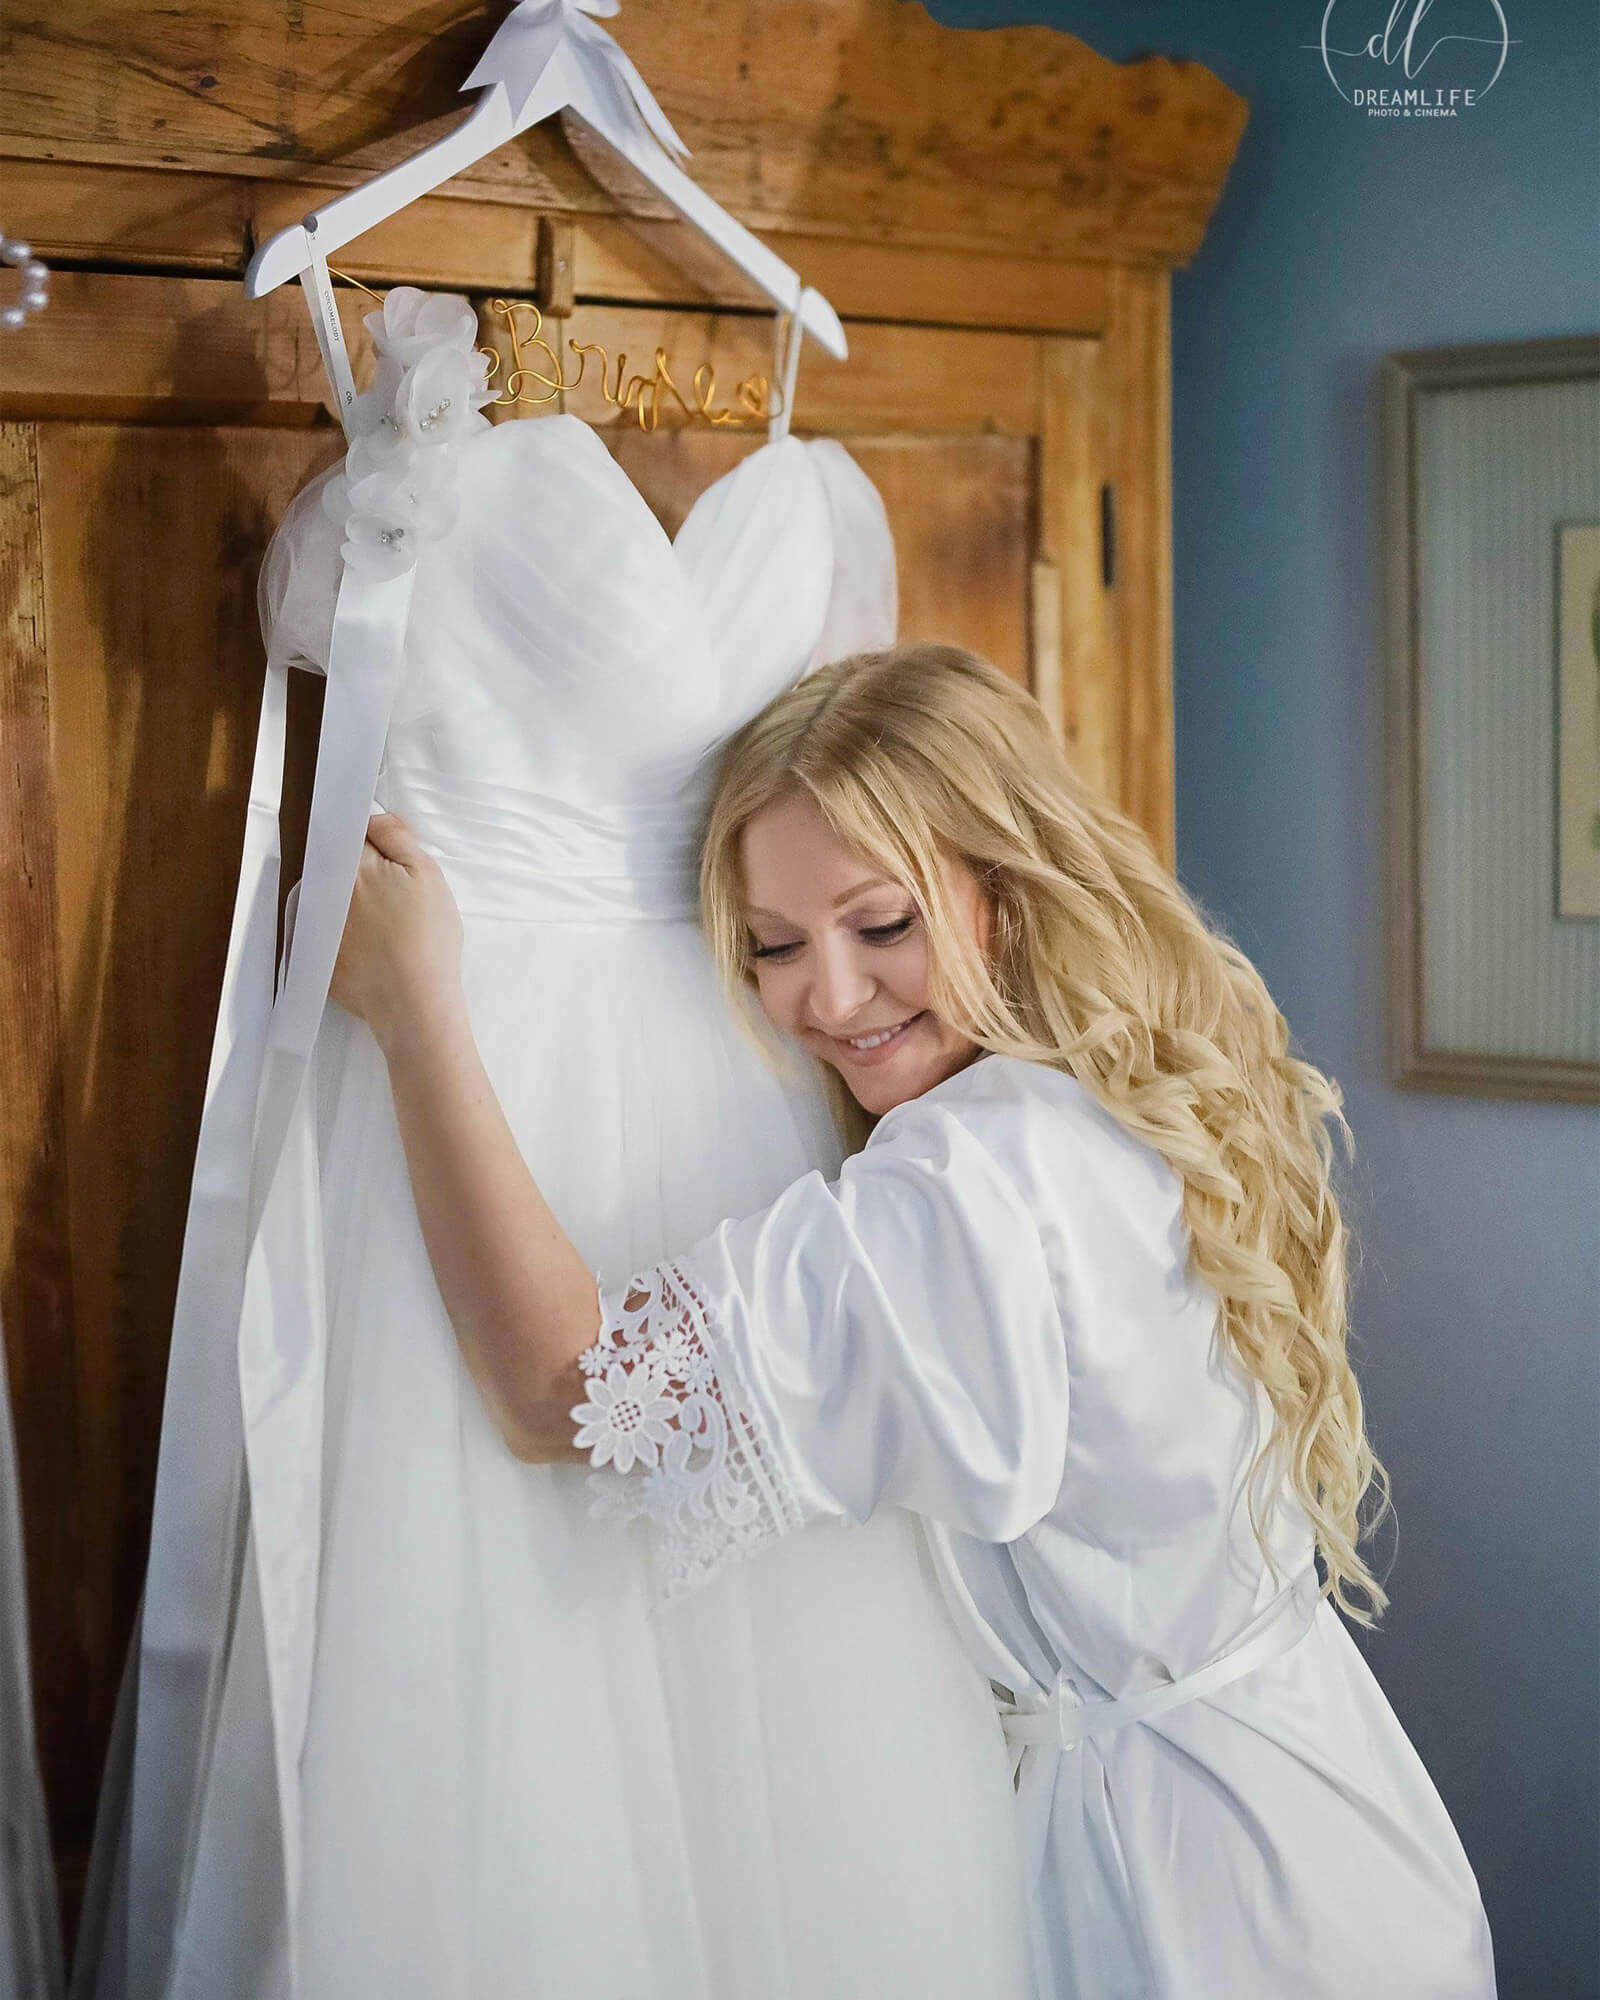 Getting Ready Moment, Don't forget to have a picture with your dream dress!